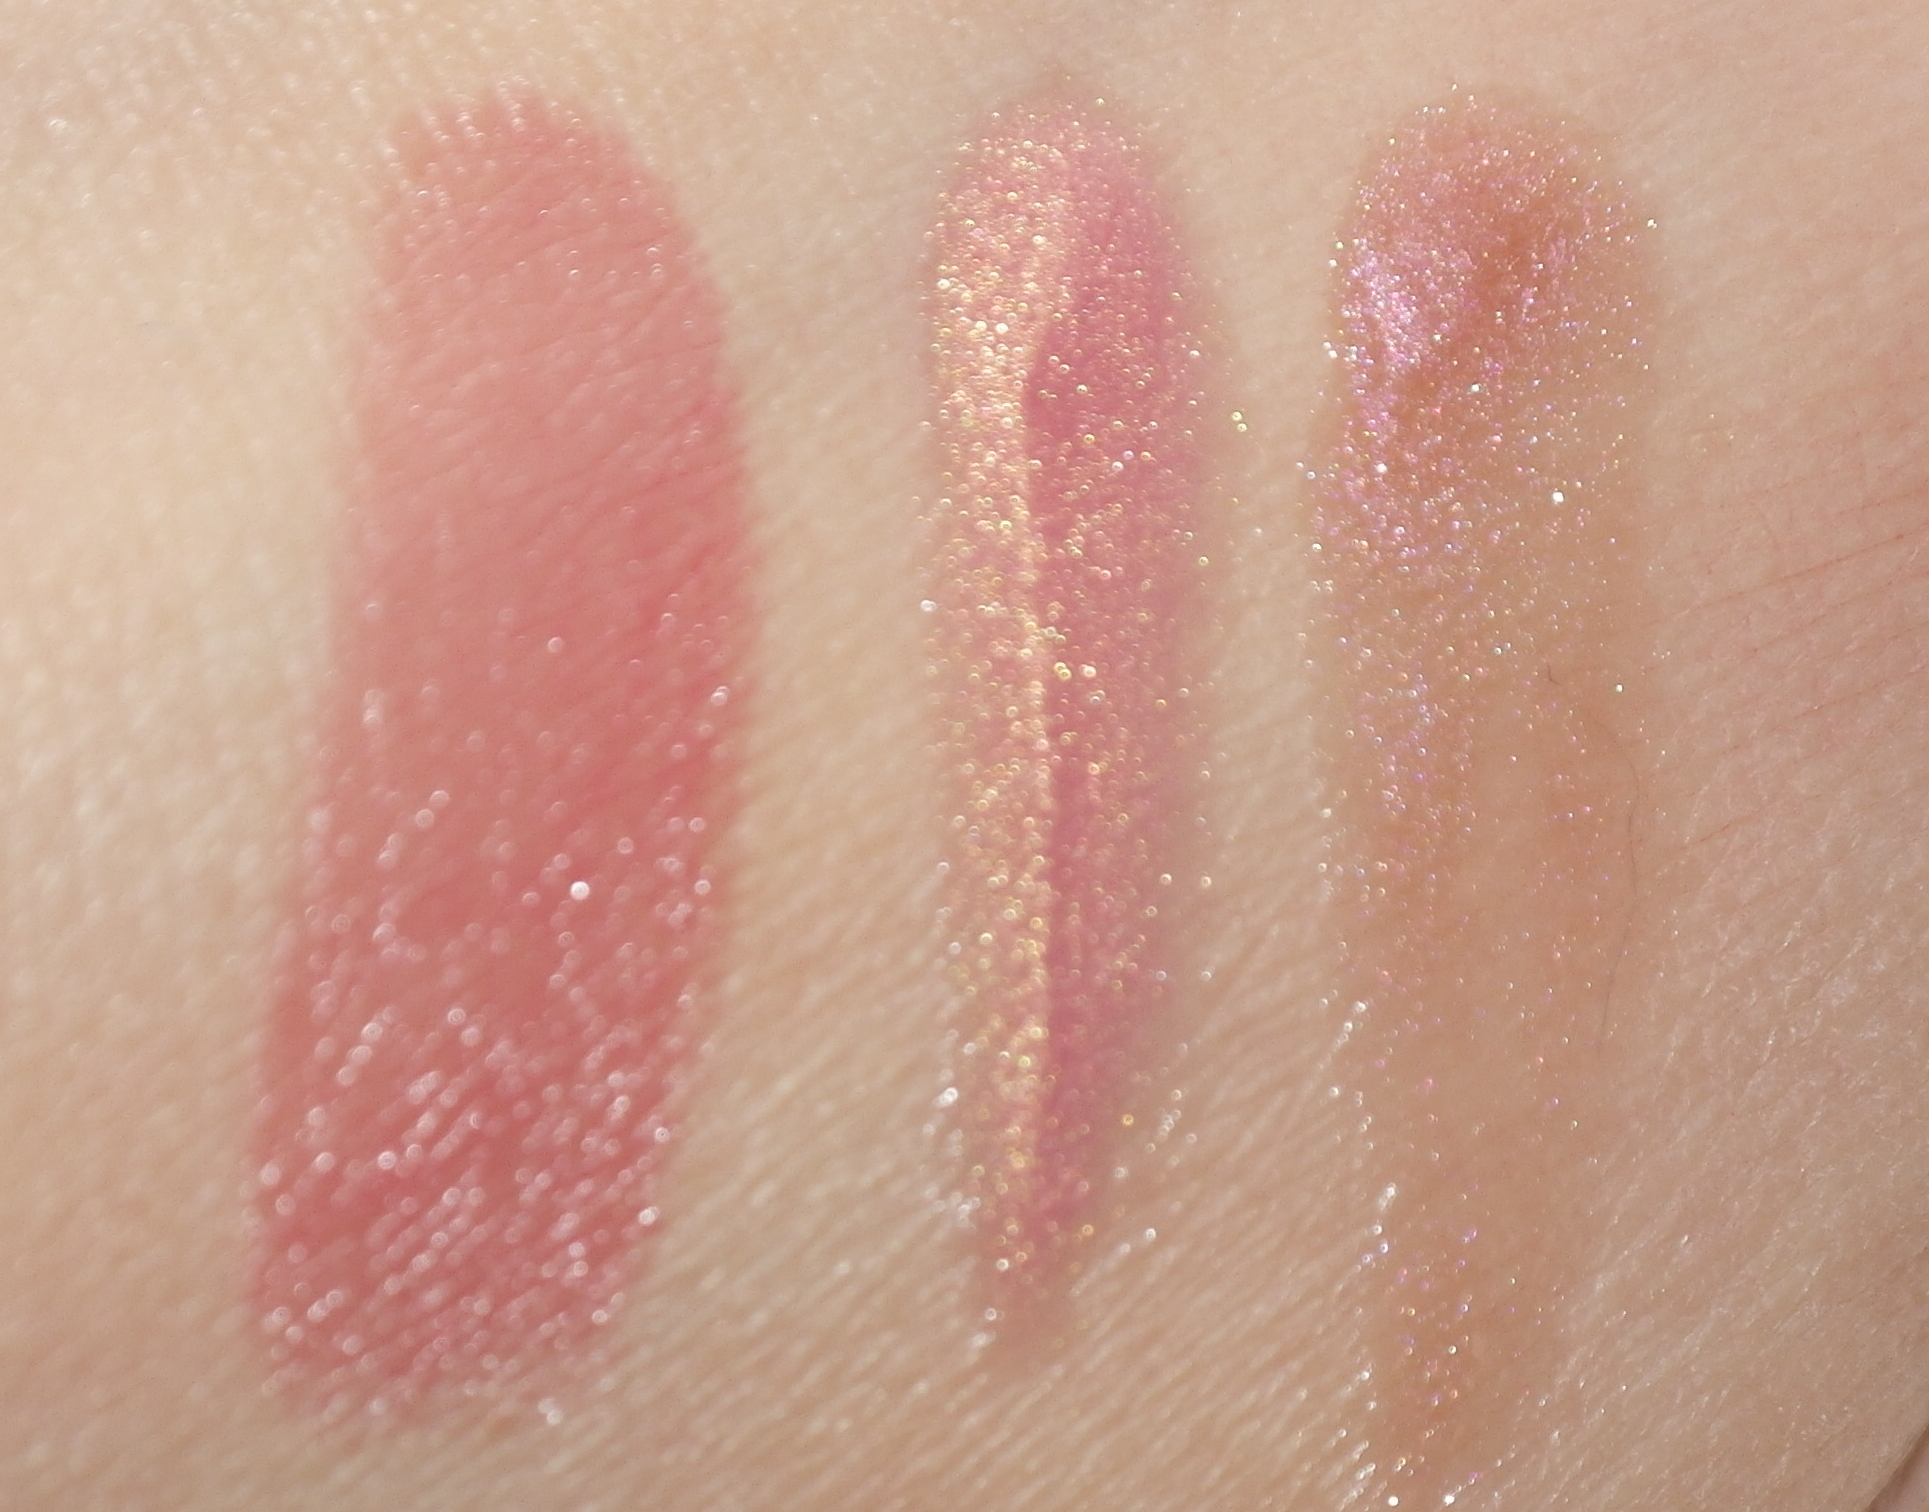 Gold Moxie Lip Gloss Swatches | www.topsimages.com